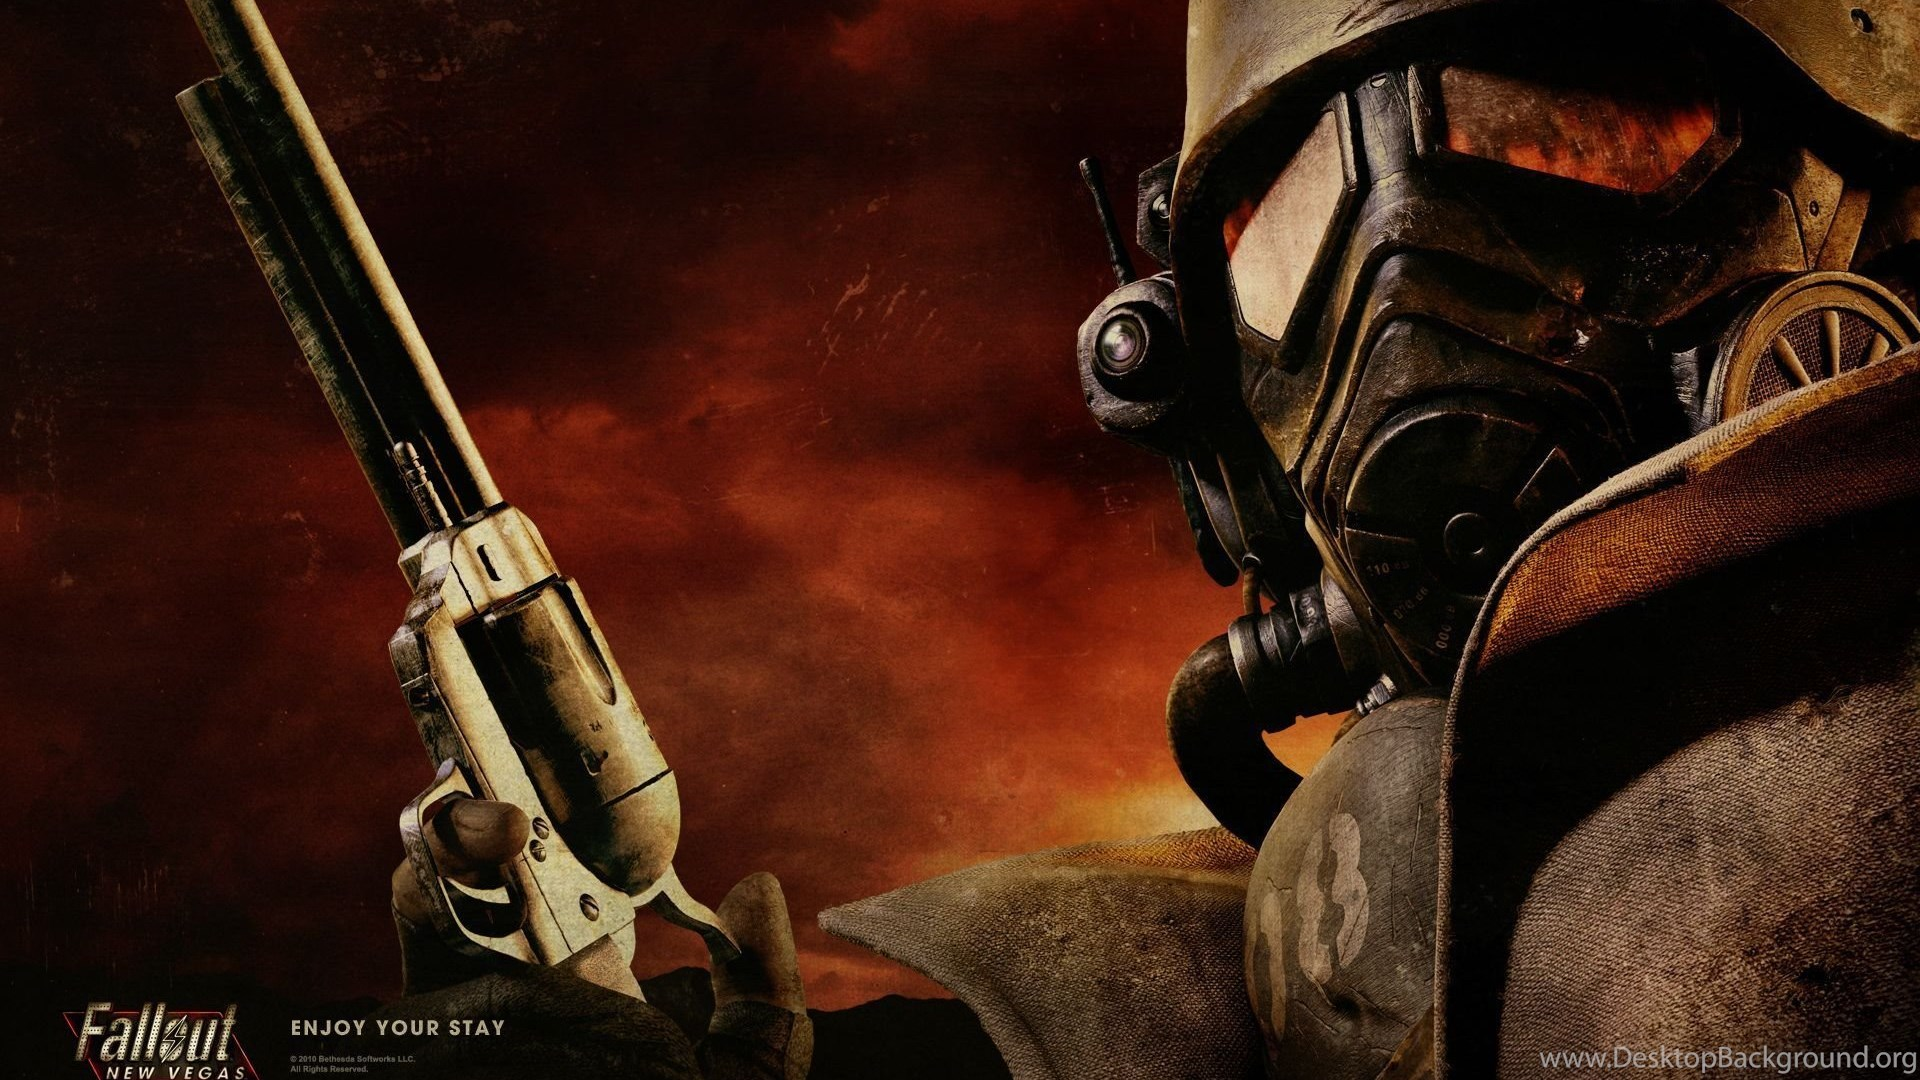 Fallout New Vegas Wallpaper Hd 310 Jpeg Desktop Background